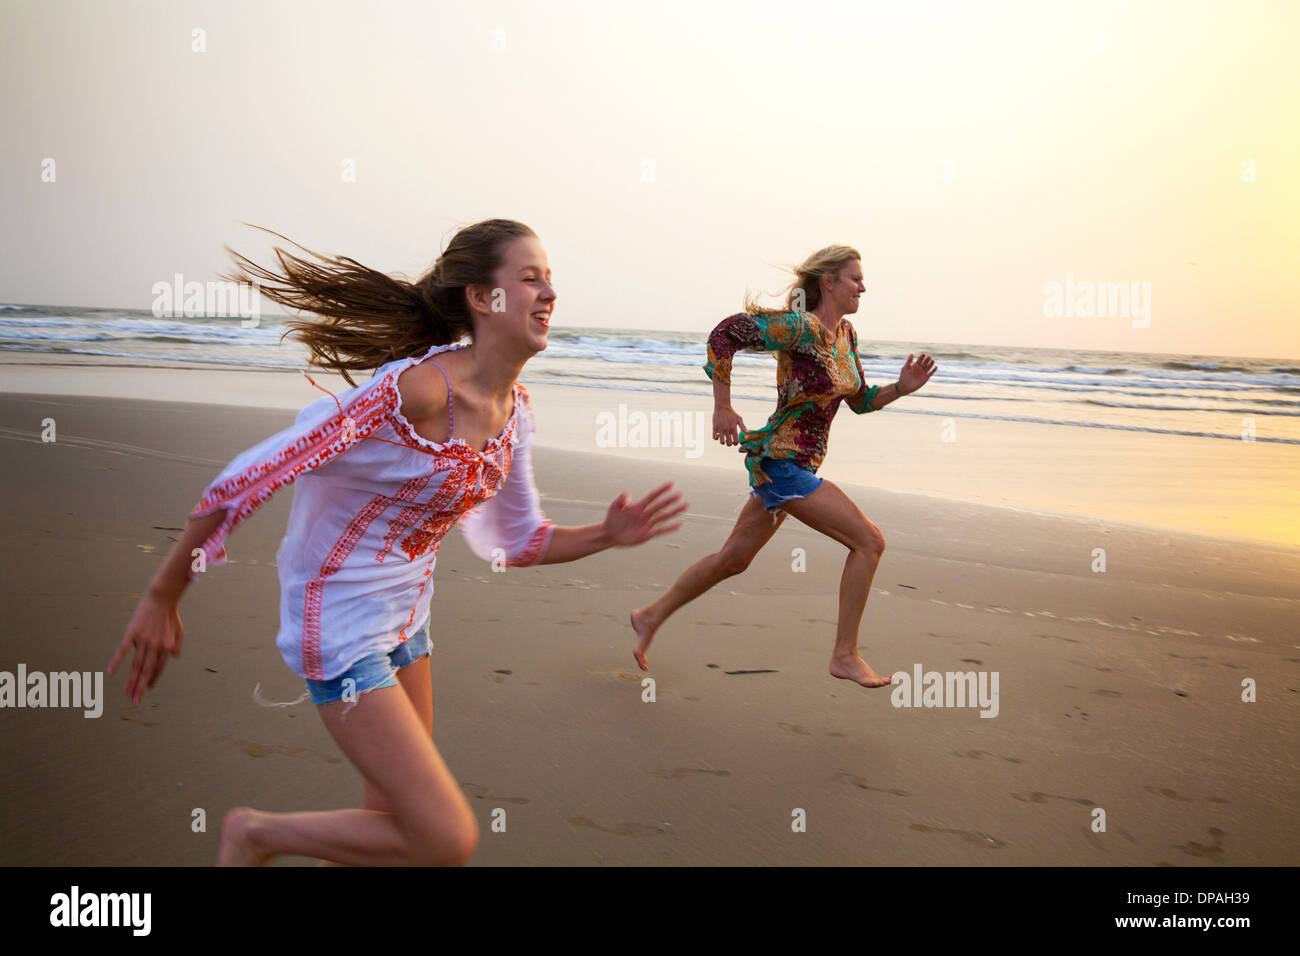 Mother and daughter running on beach - Stock Image